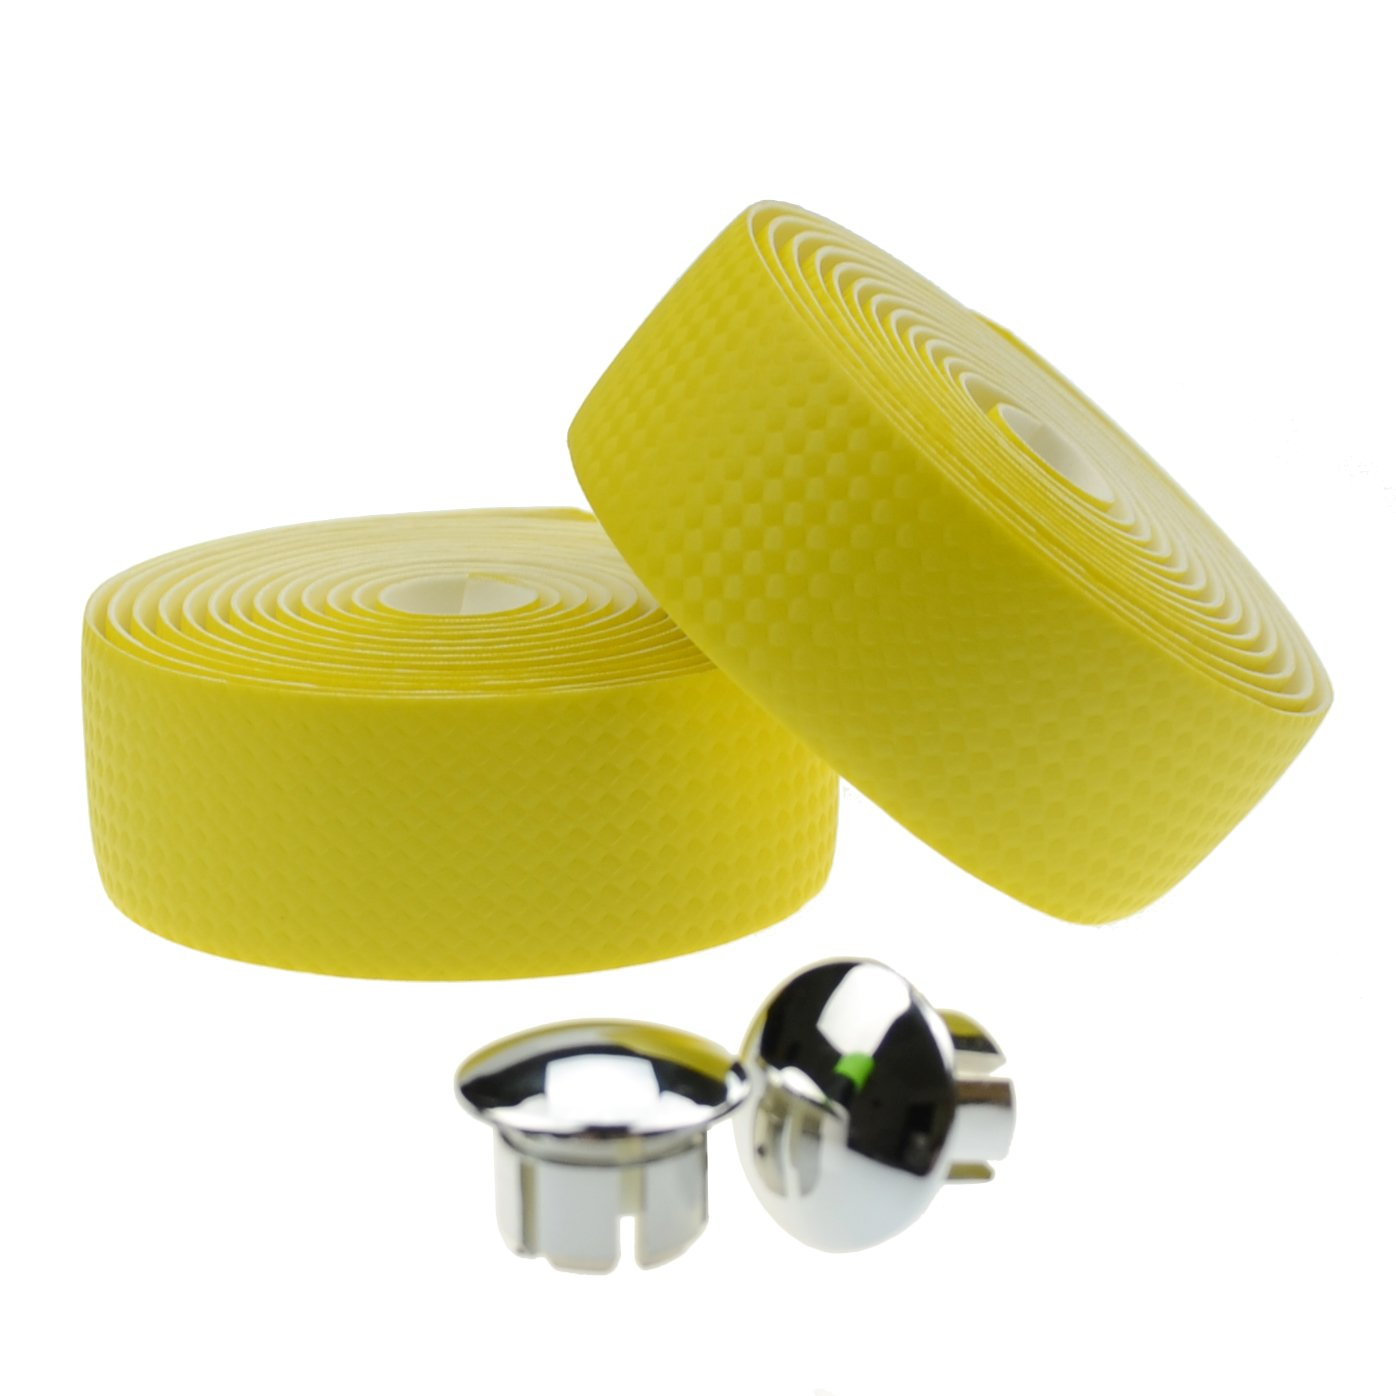 KINGOU Yellow Carbon Fiber PU Leather Road Bike Handlebar Tape Bar Tapes - 2PCS Per Set by KINGOU